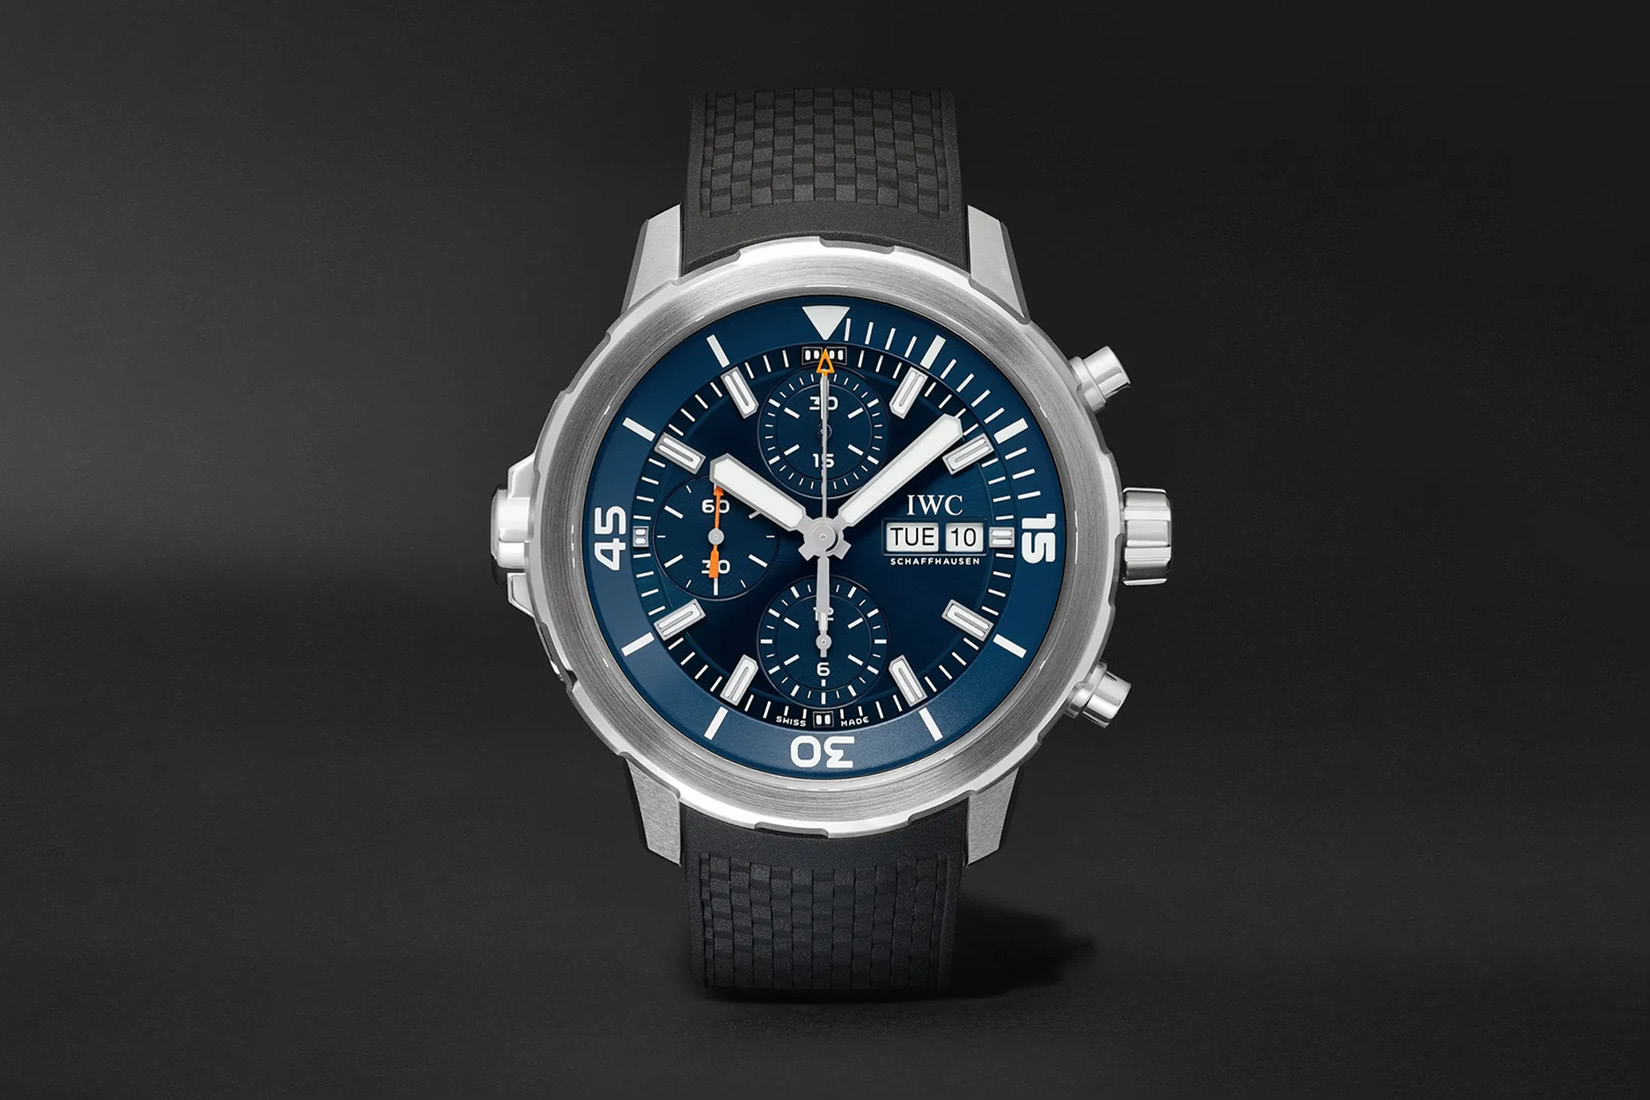 iwc luxury watches aquatimer expedition jacques yves cousteau luxe digital